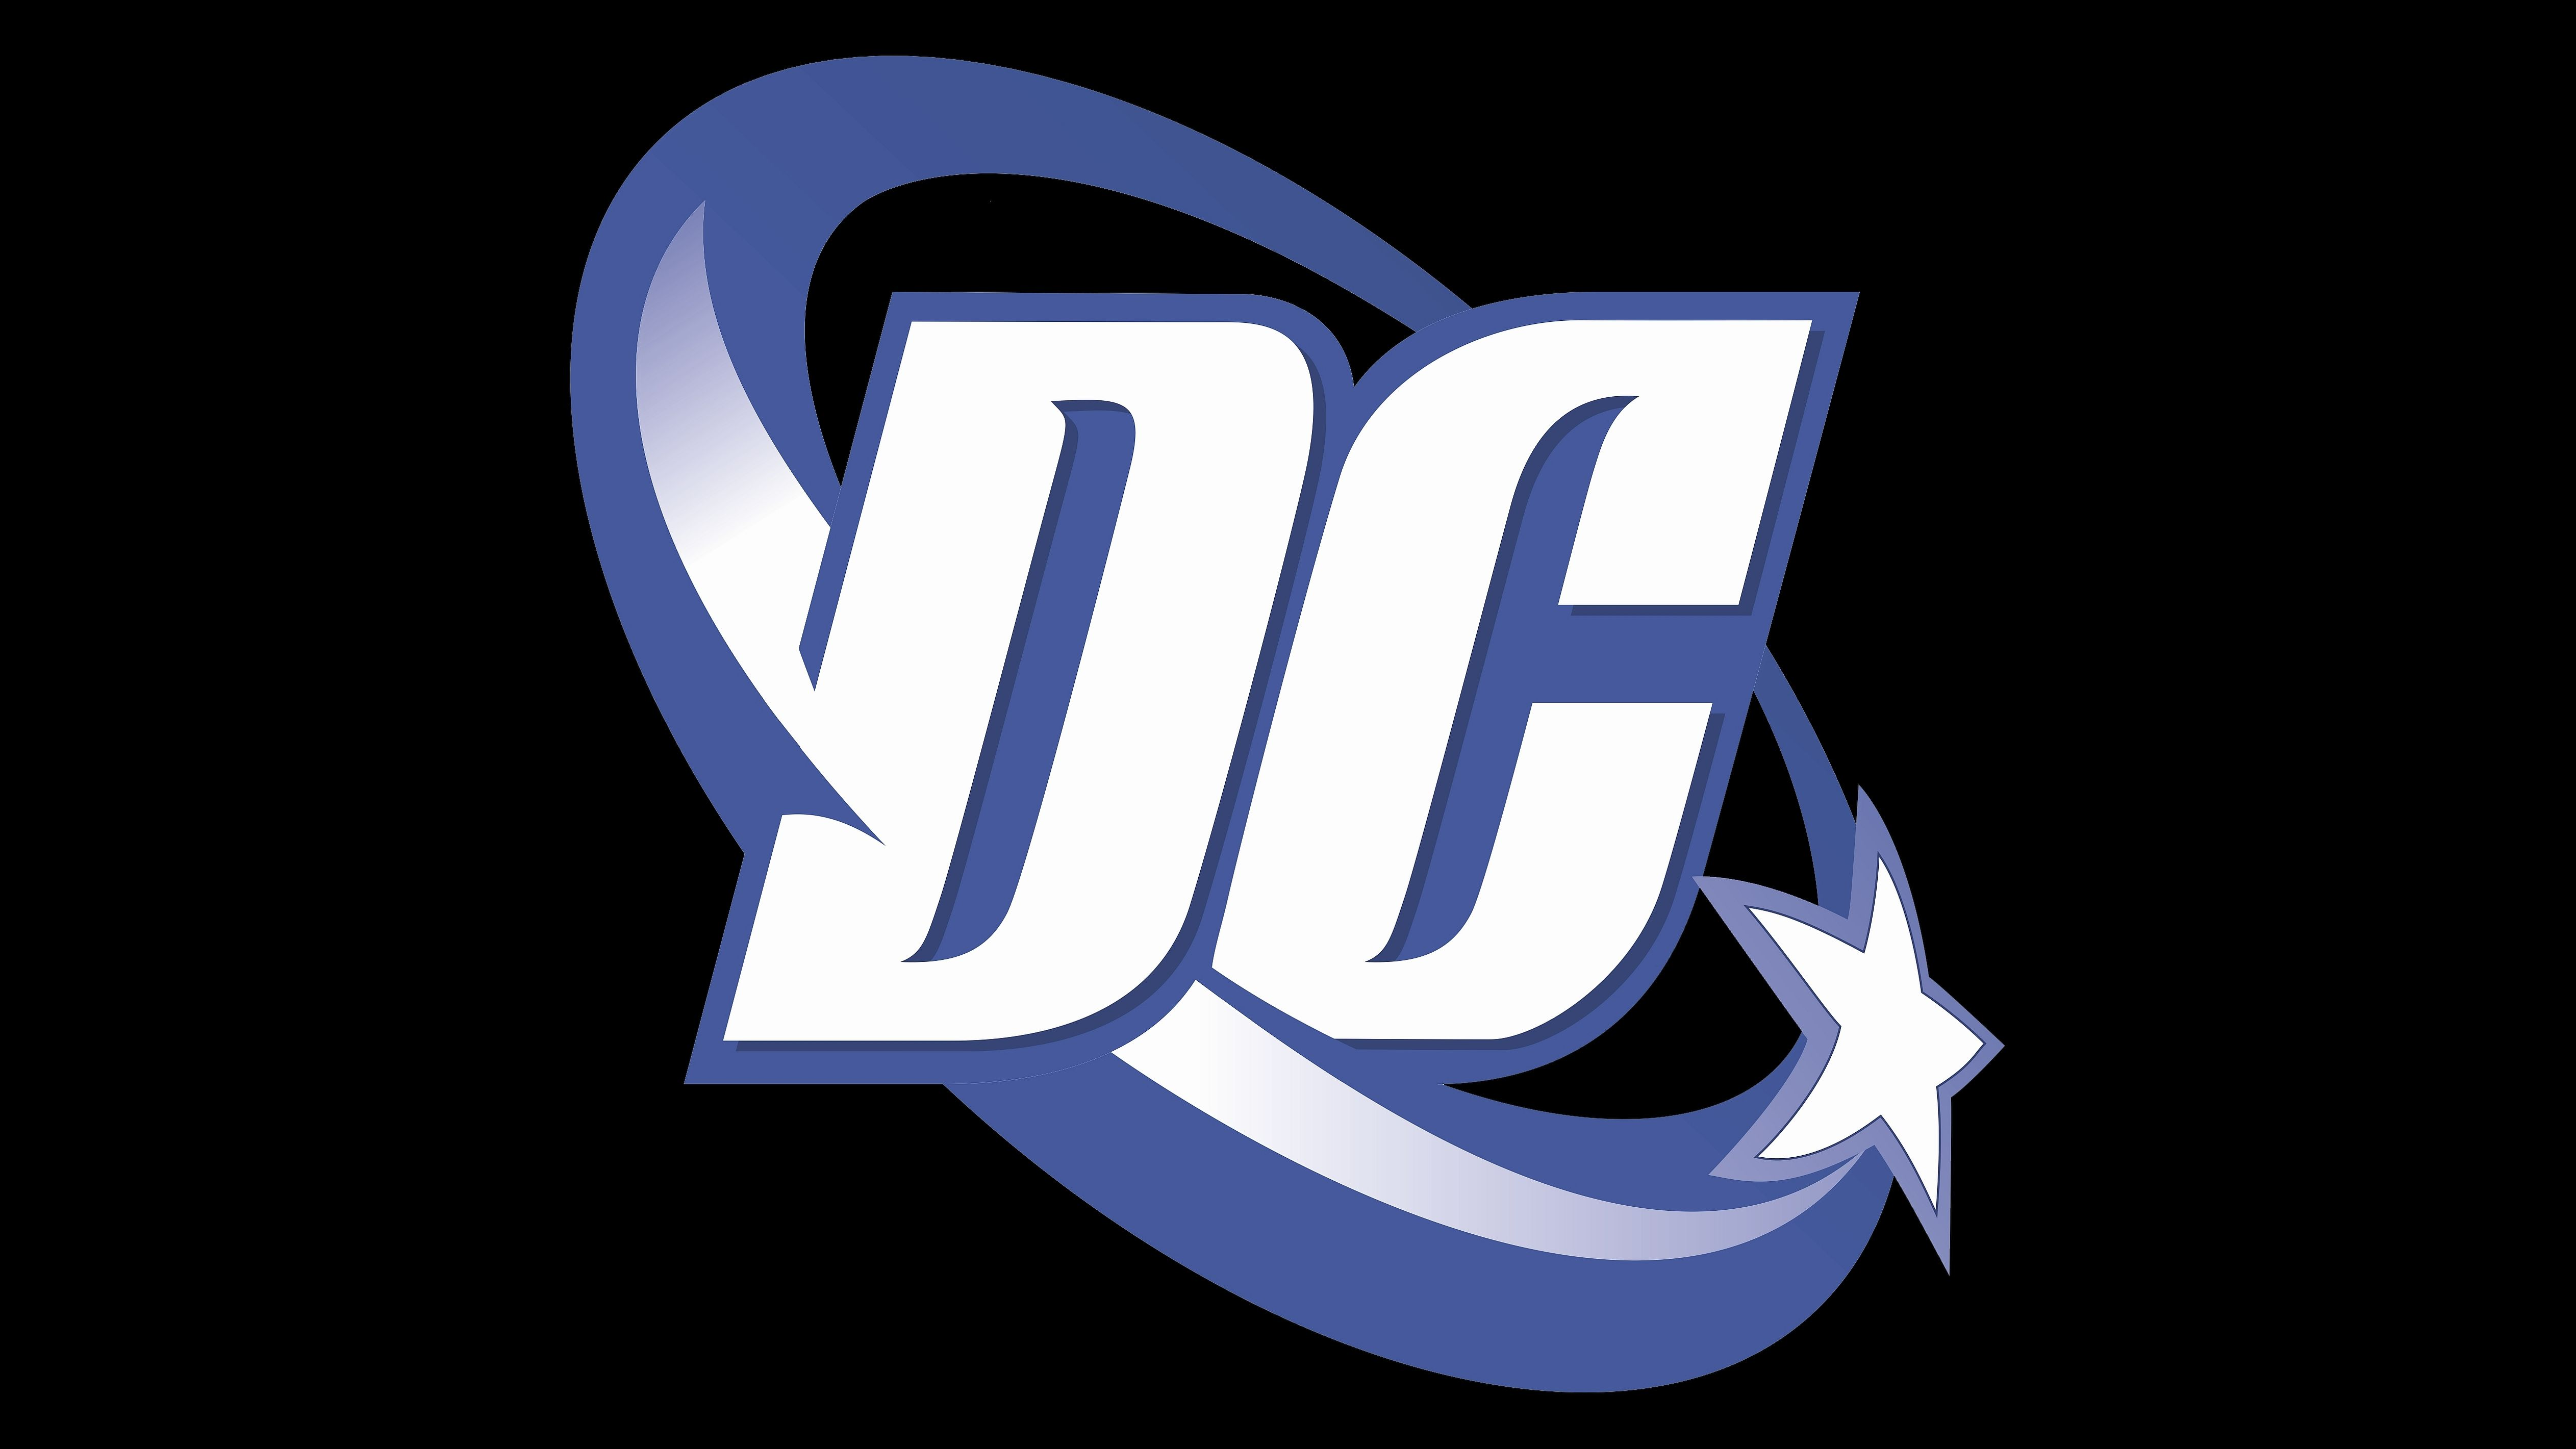 Dc Comics Logo Wallpaper For Android #dc #comics #logo.